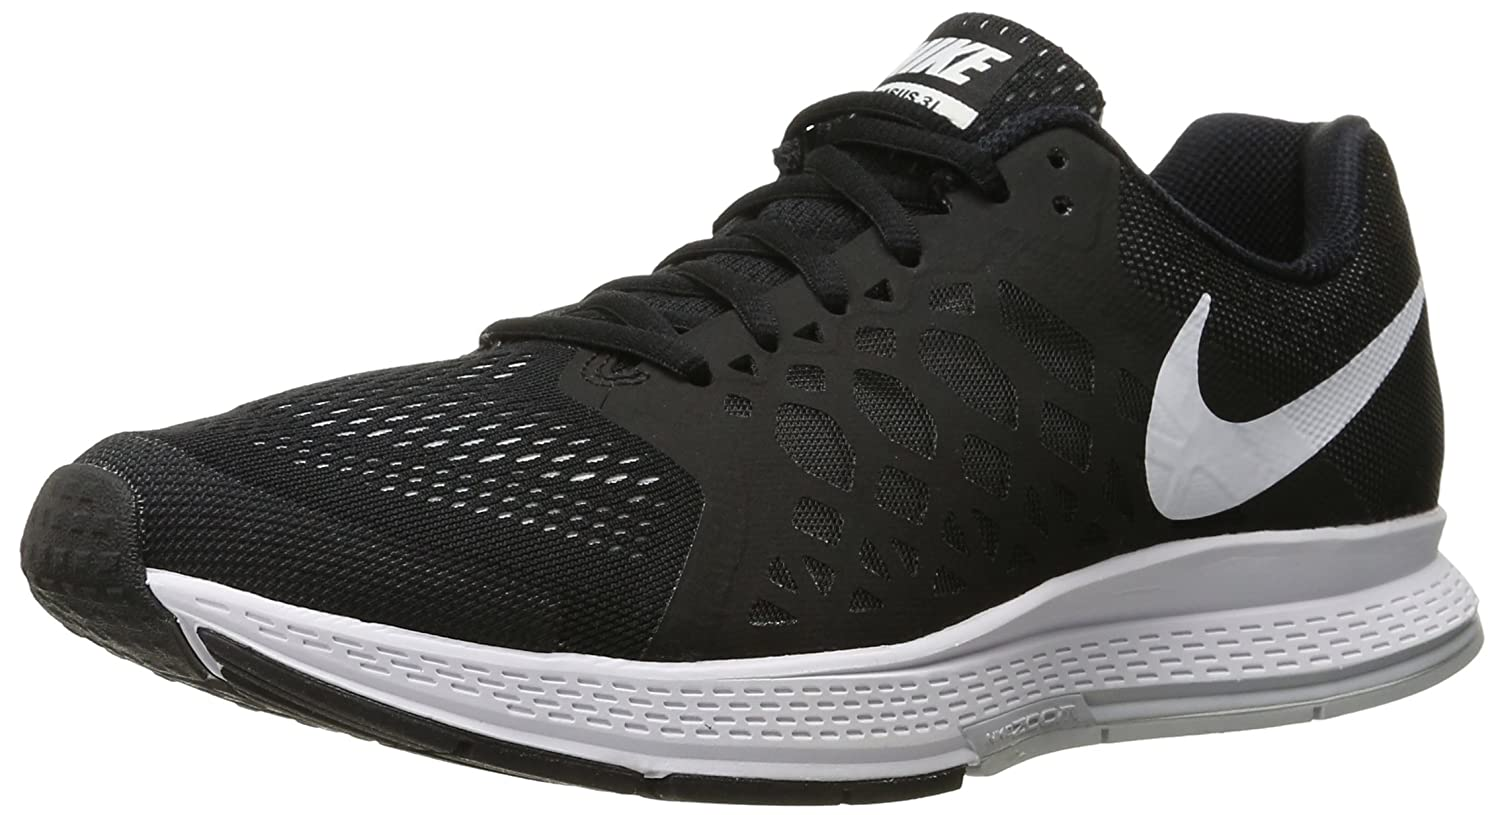 hot sale online 28797 fa8af Nike Men s Zoom Pegasus 31 Black, White Running Shoes -7 UK India (41 EU)(8  US)  Buy Online at Low Prices in India - Amazon.in